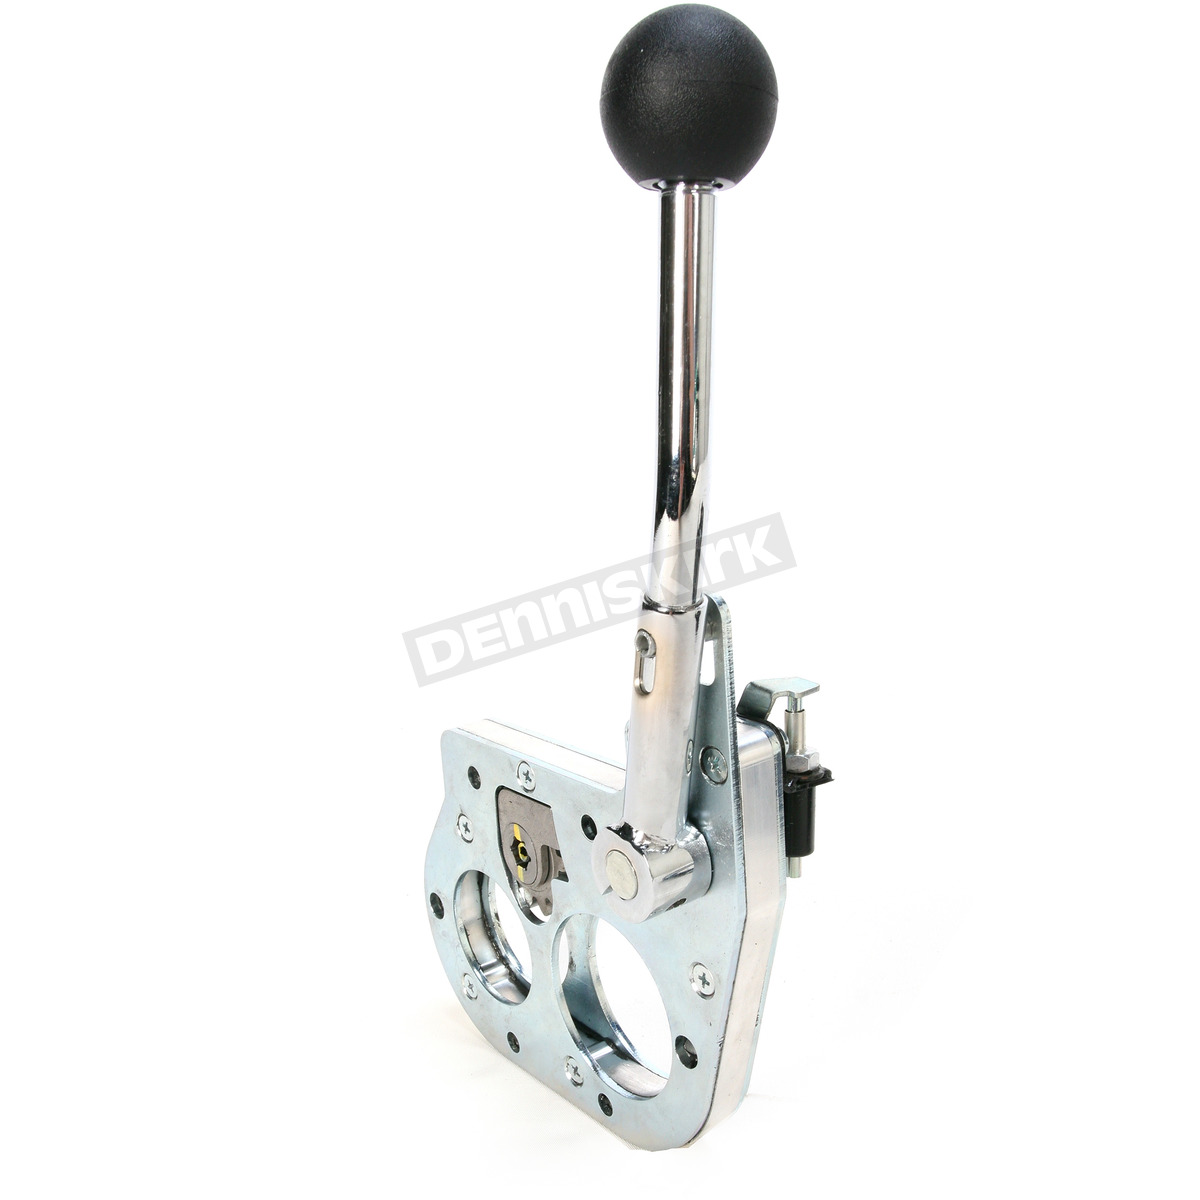 hight resolution of motor trike mechanical reverse with electronic cut off switch mttr 0021 harley davidson motorcycle dennis kirk